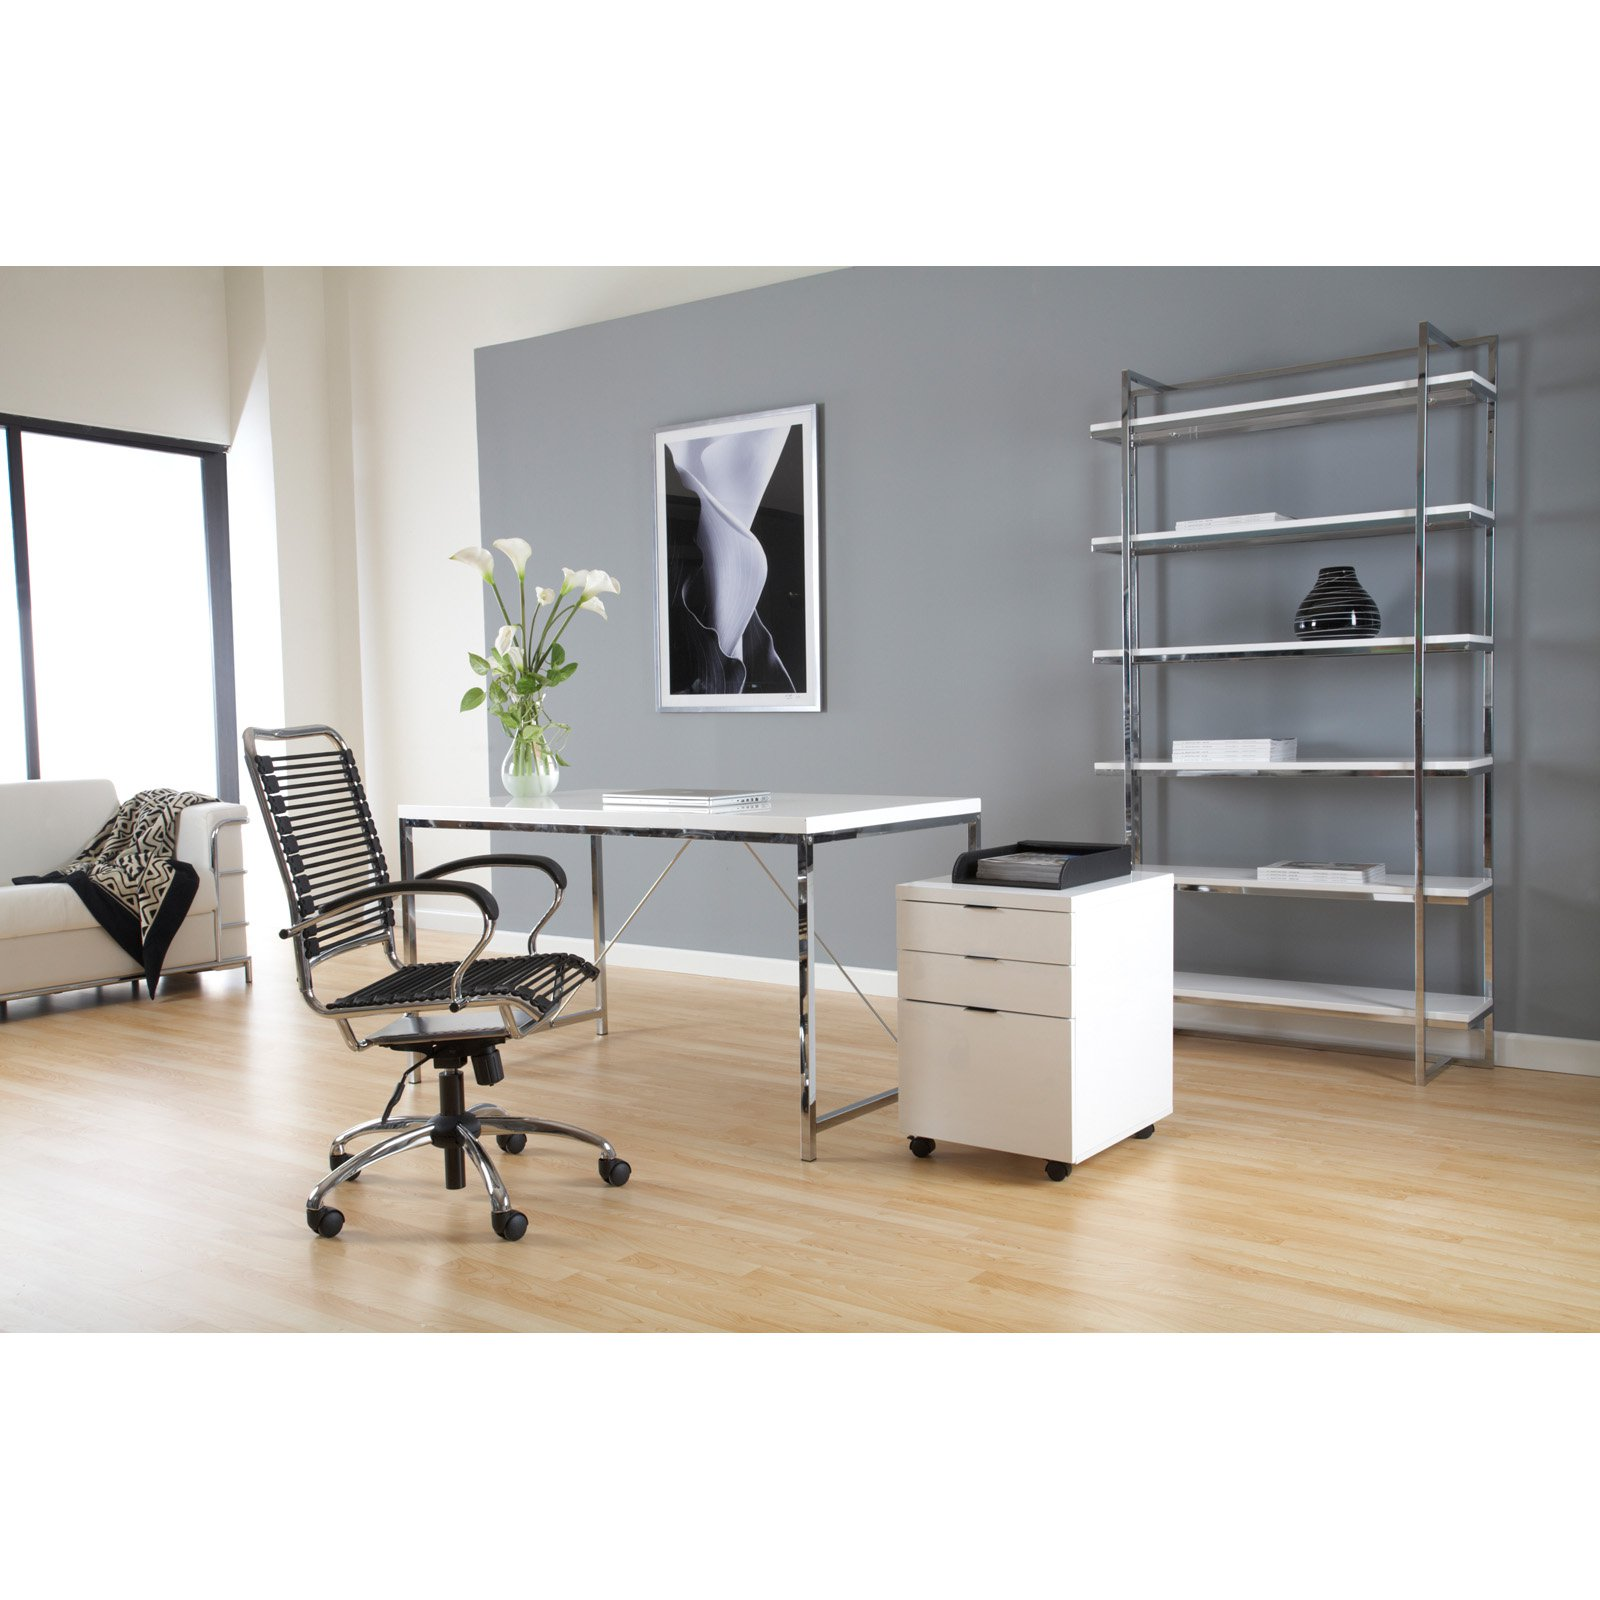 Euro Style Gilbert Writing / Laptop Desk - White